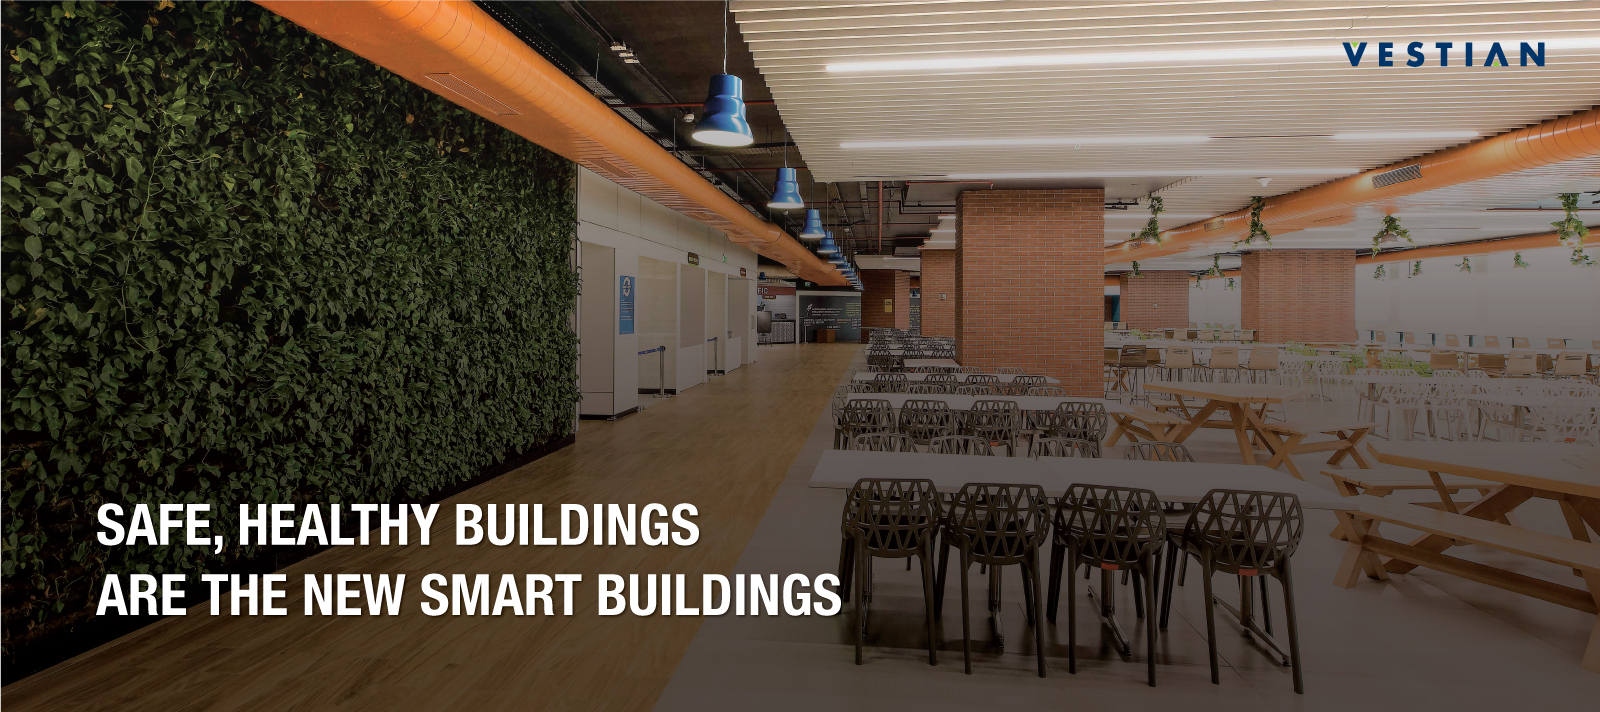 Stay Healthy Buildings Are The New Smart Buildings | Vestian